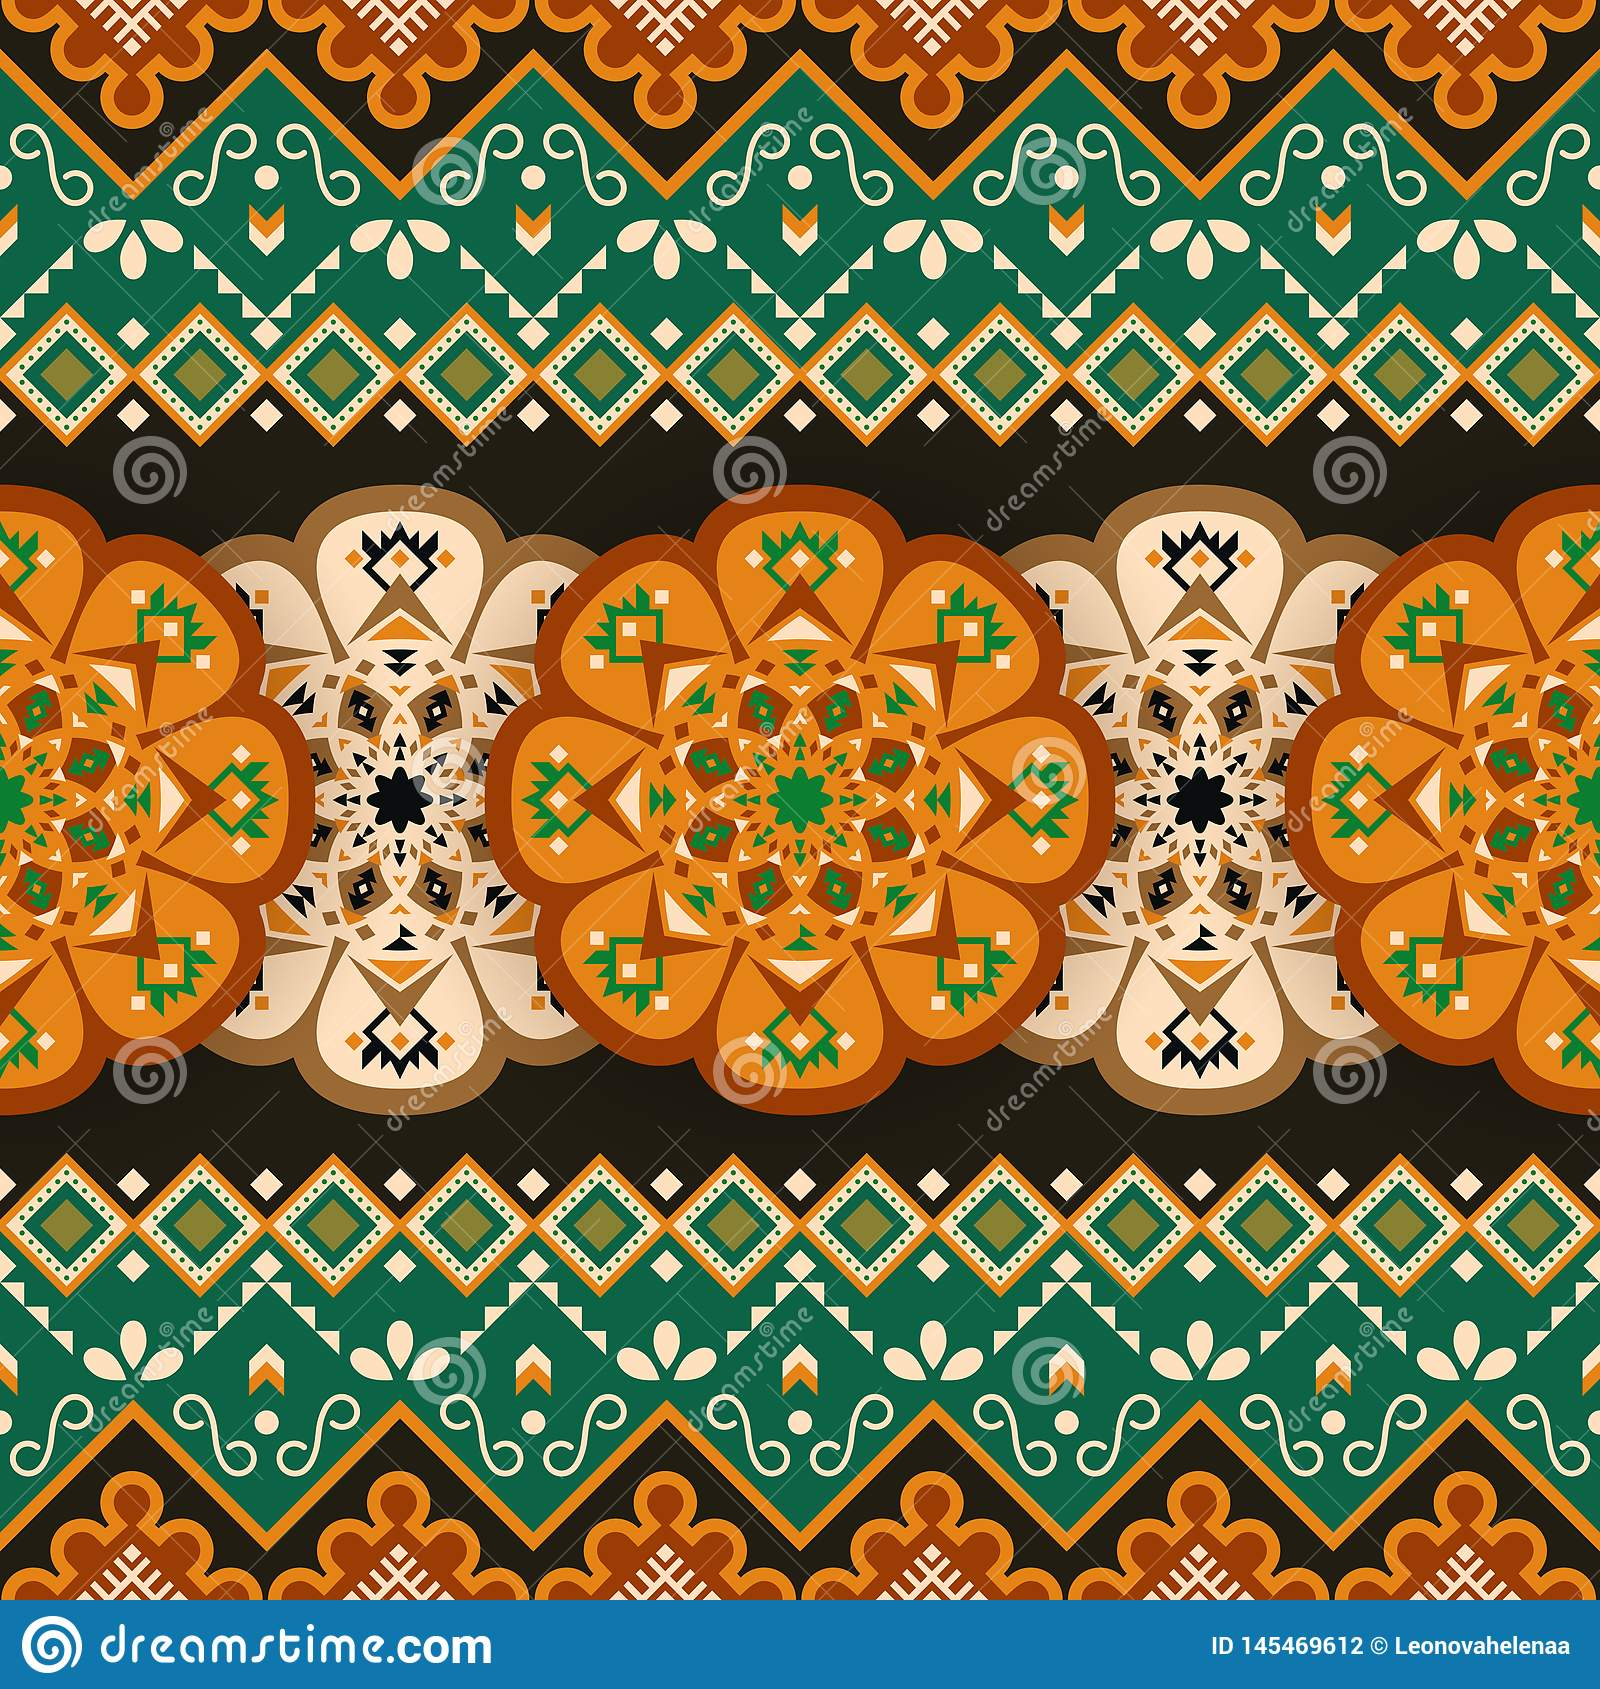 Ethnic seamless pattern. Mexican geometric print